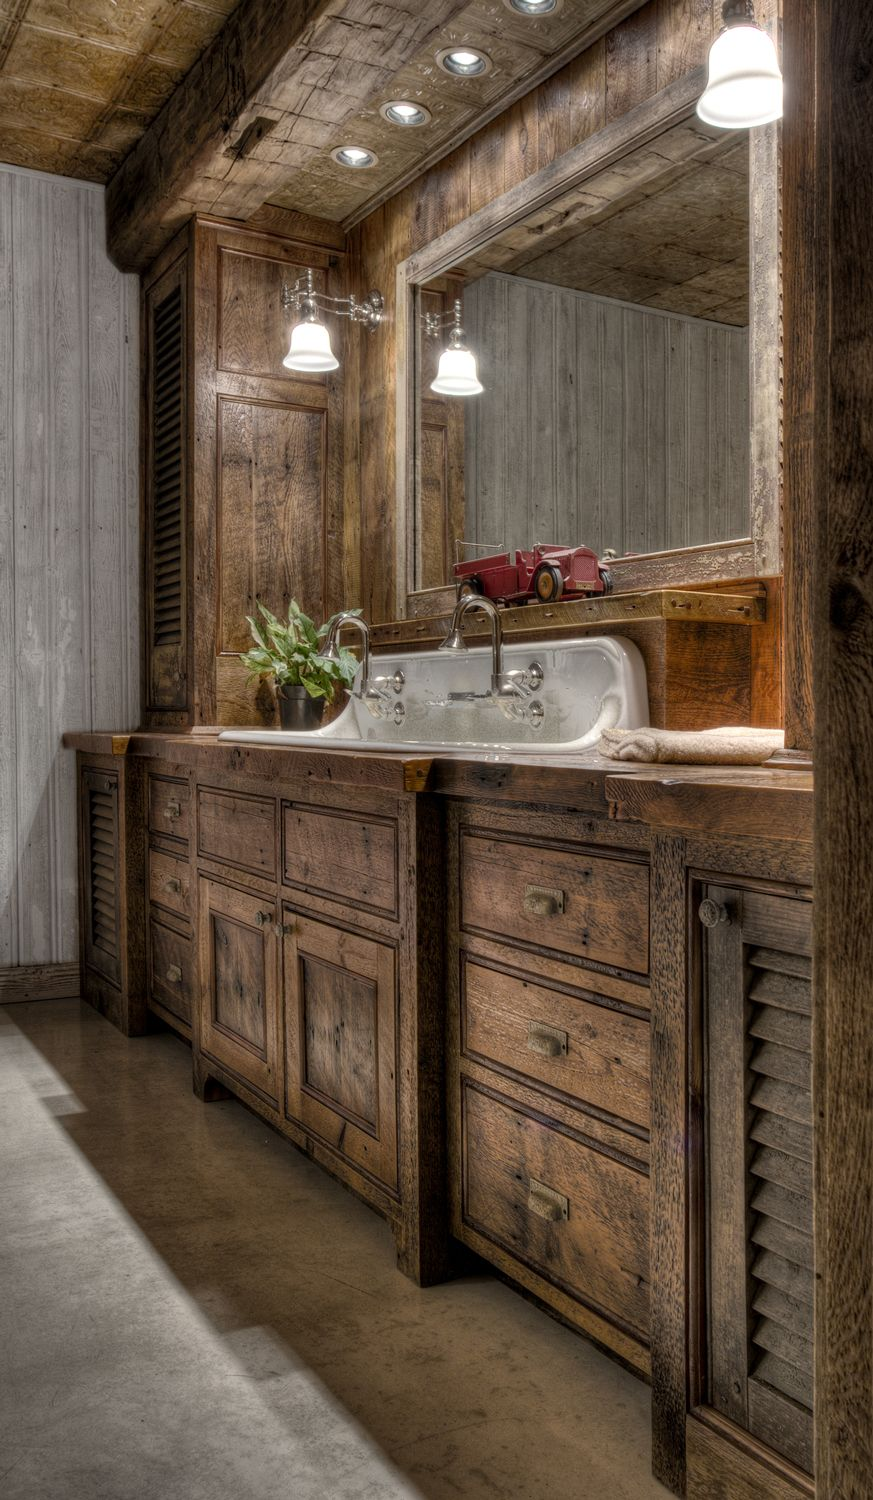 Rustic bathroom vanity ideas donpedrobrooklyn 587 jpg